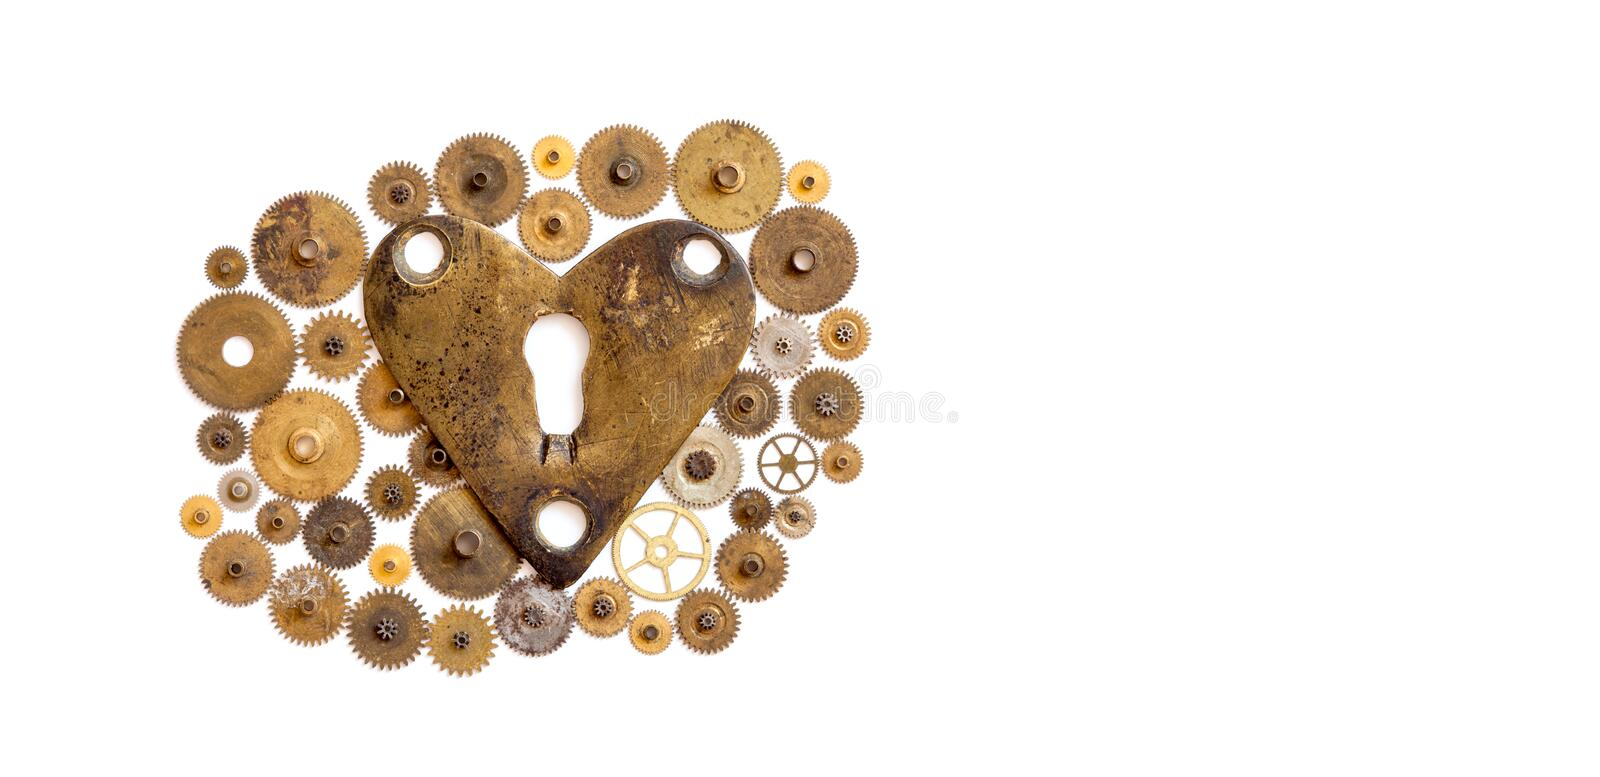 Love heart steampunk machinery ornament on white. Aged bronze keyhole heart shape with many textured cogs gears wheels stock photography